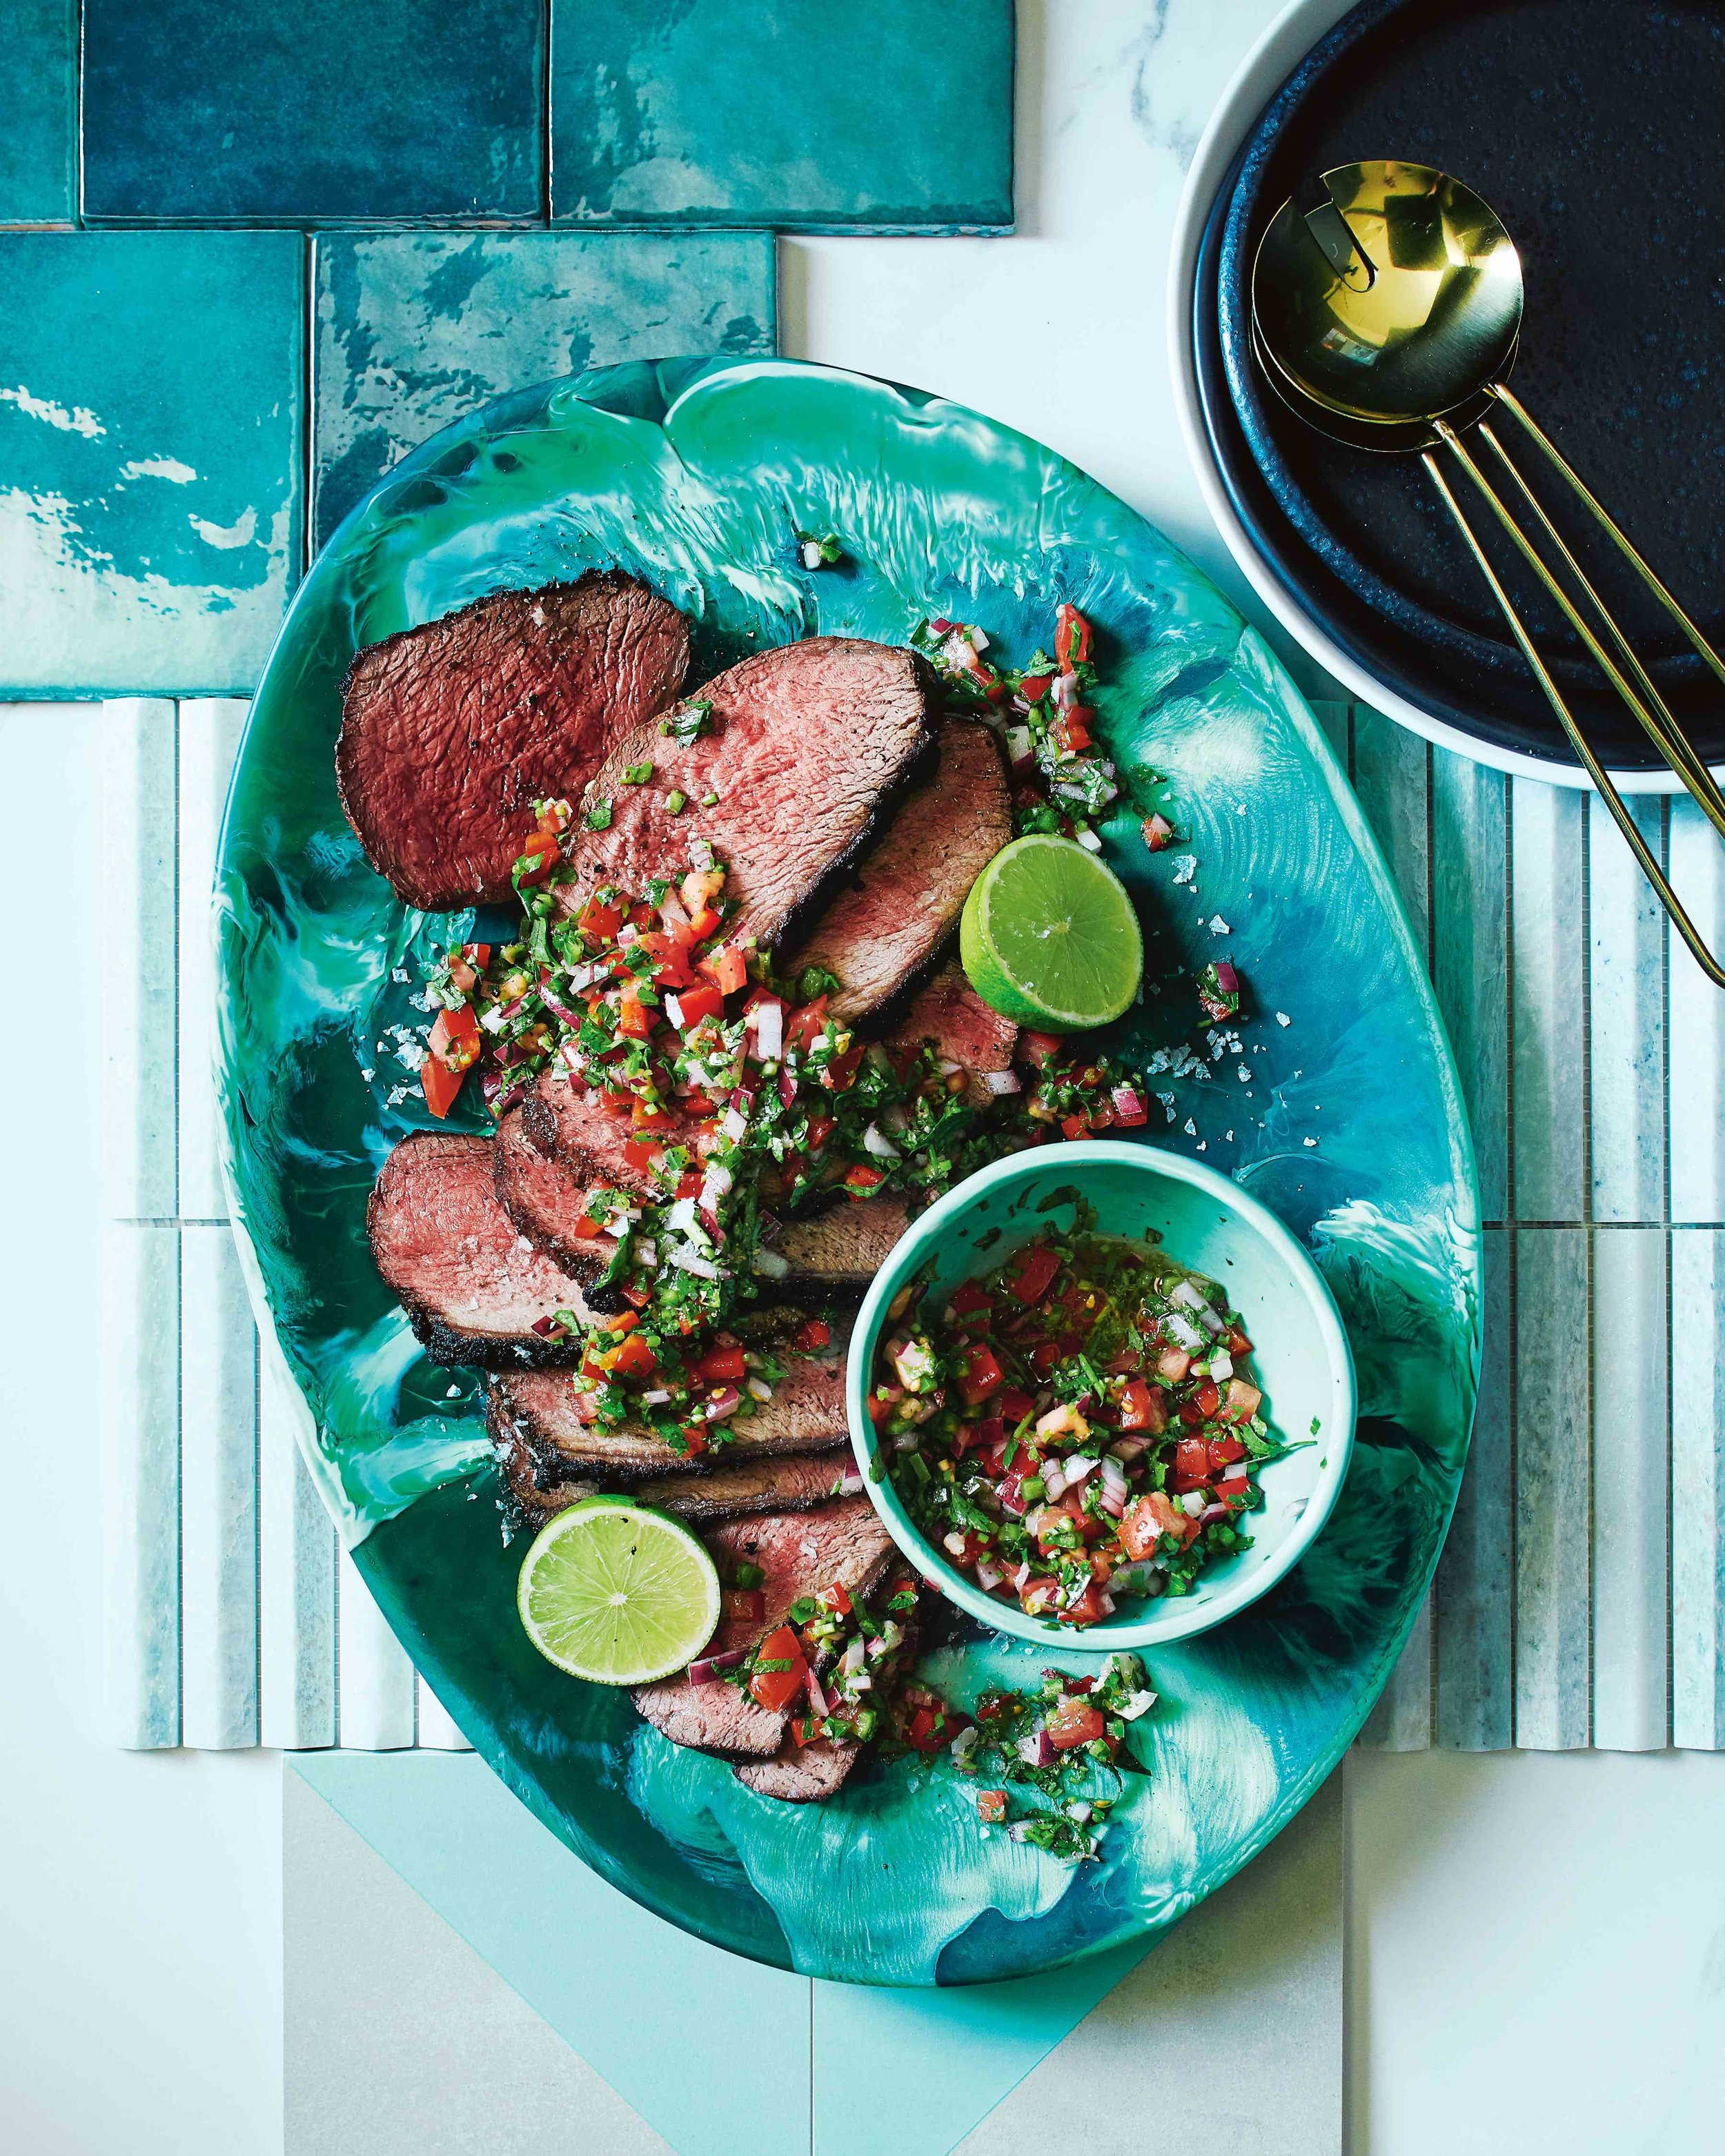 RUMP STEAK Recipe by Hayden Quinn